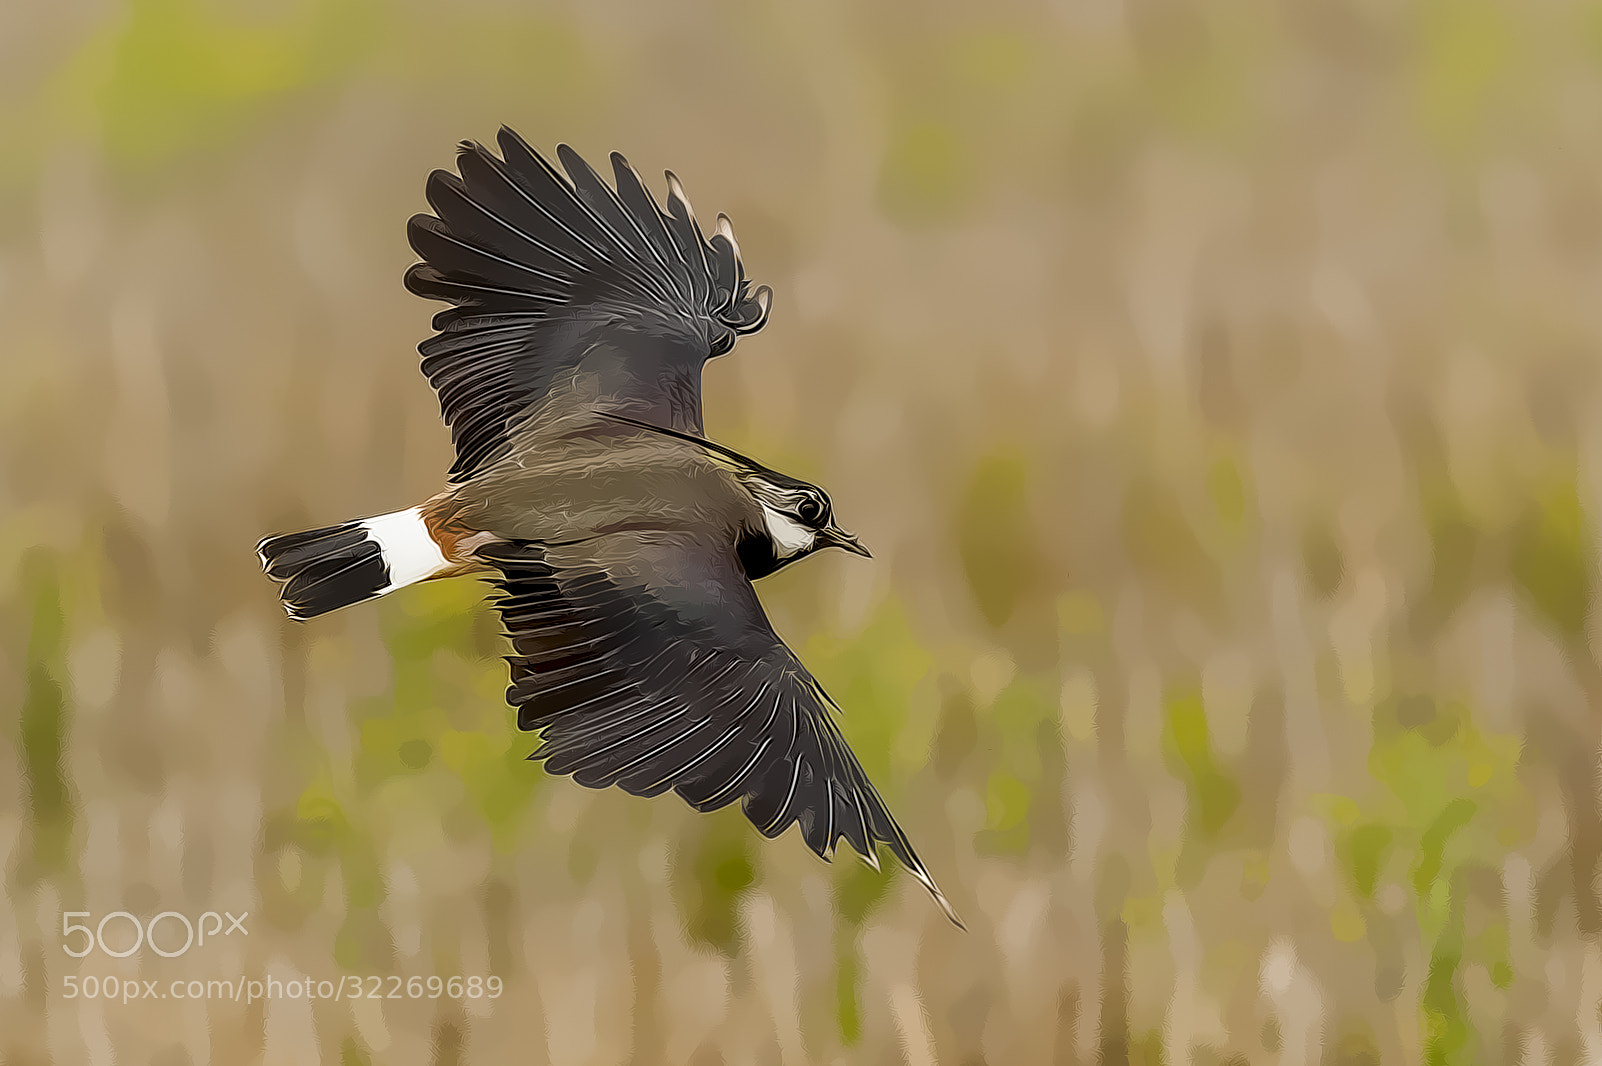 Photograph artistic Lapwing by Riccardo Trevisani on 500px